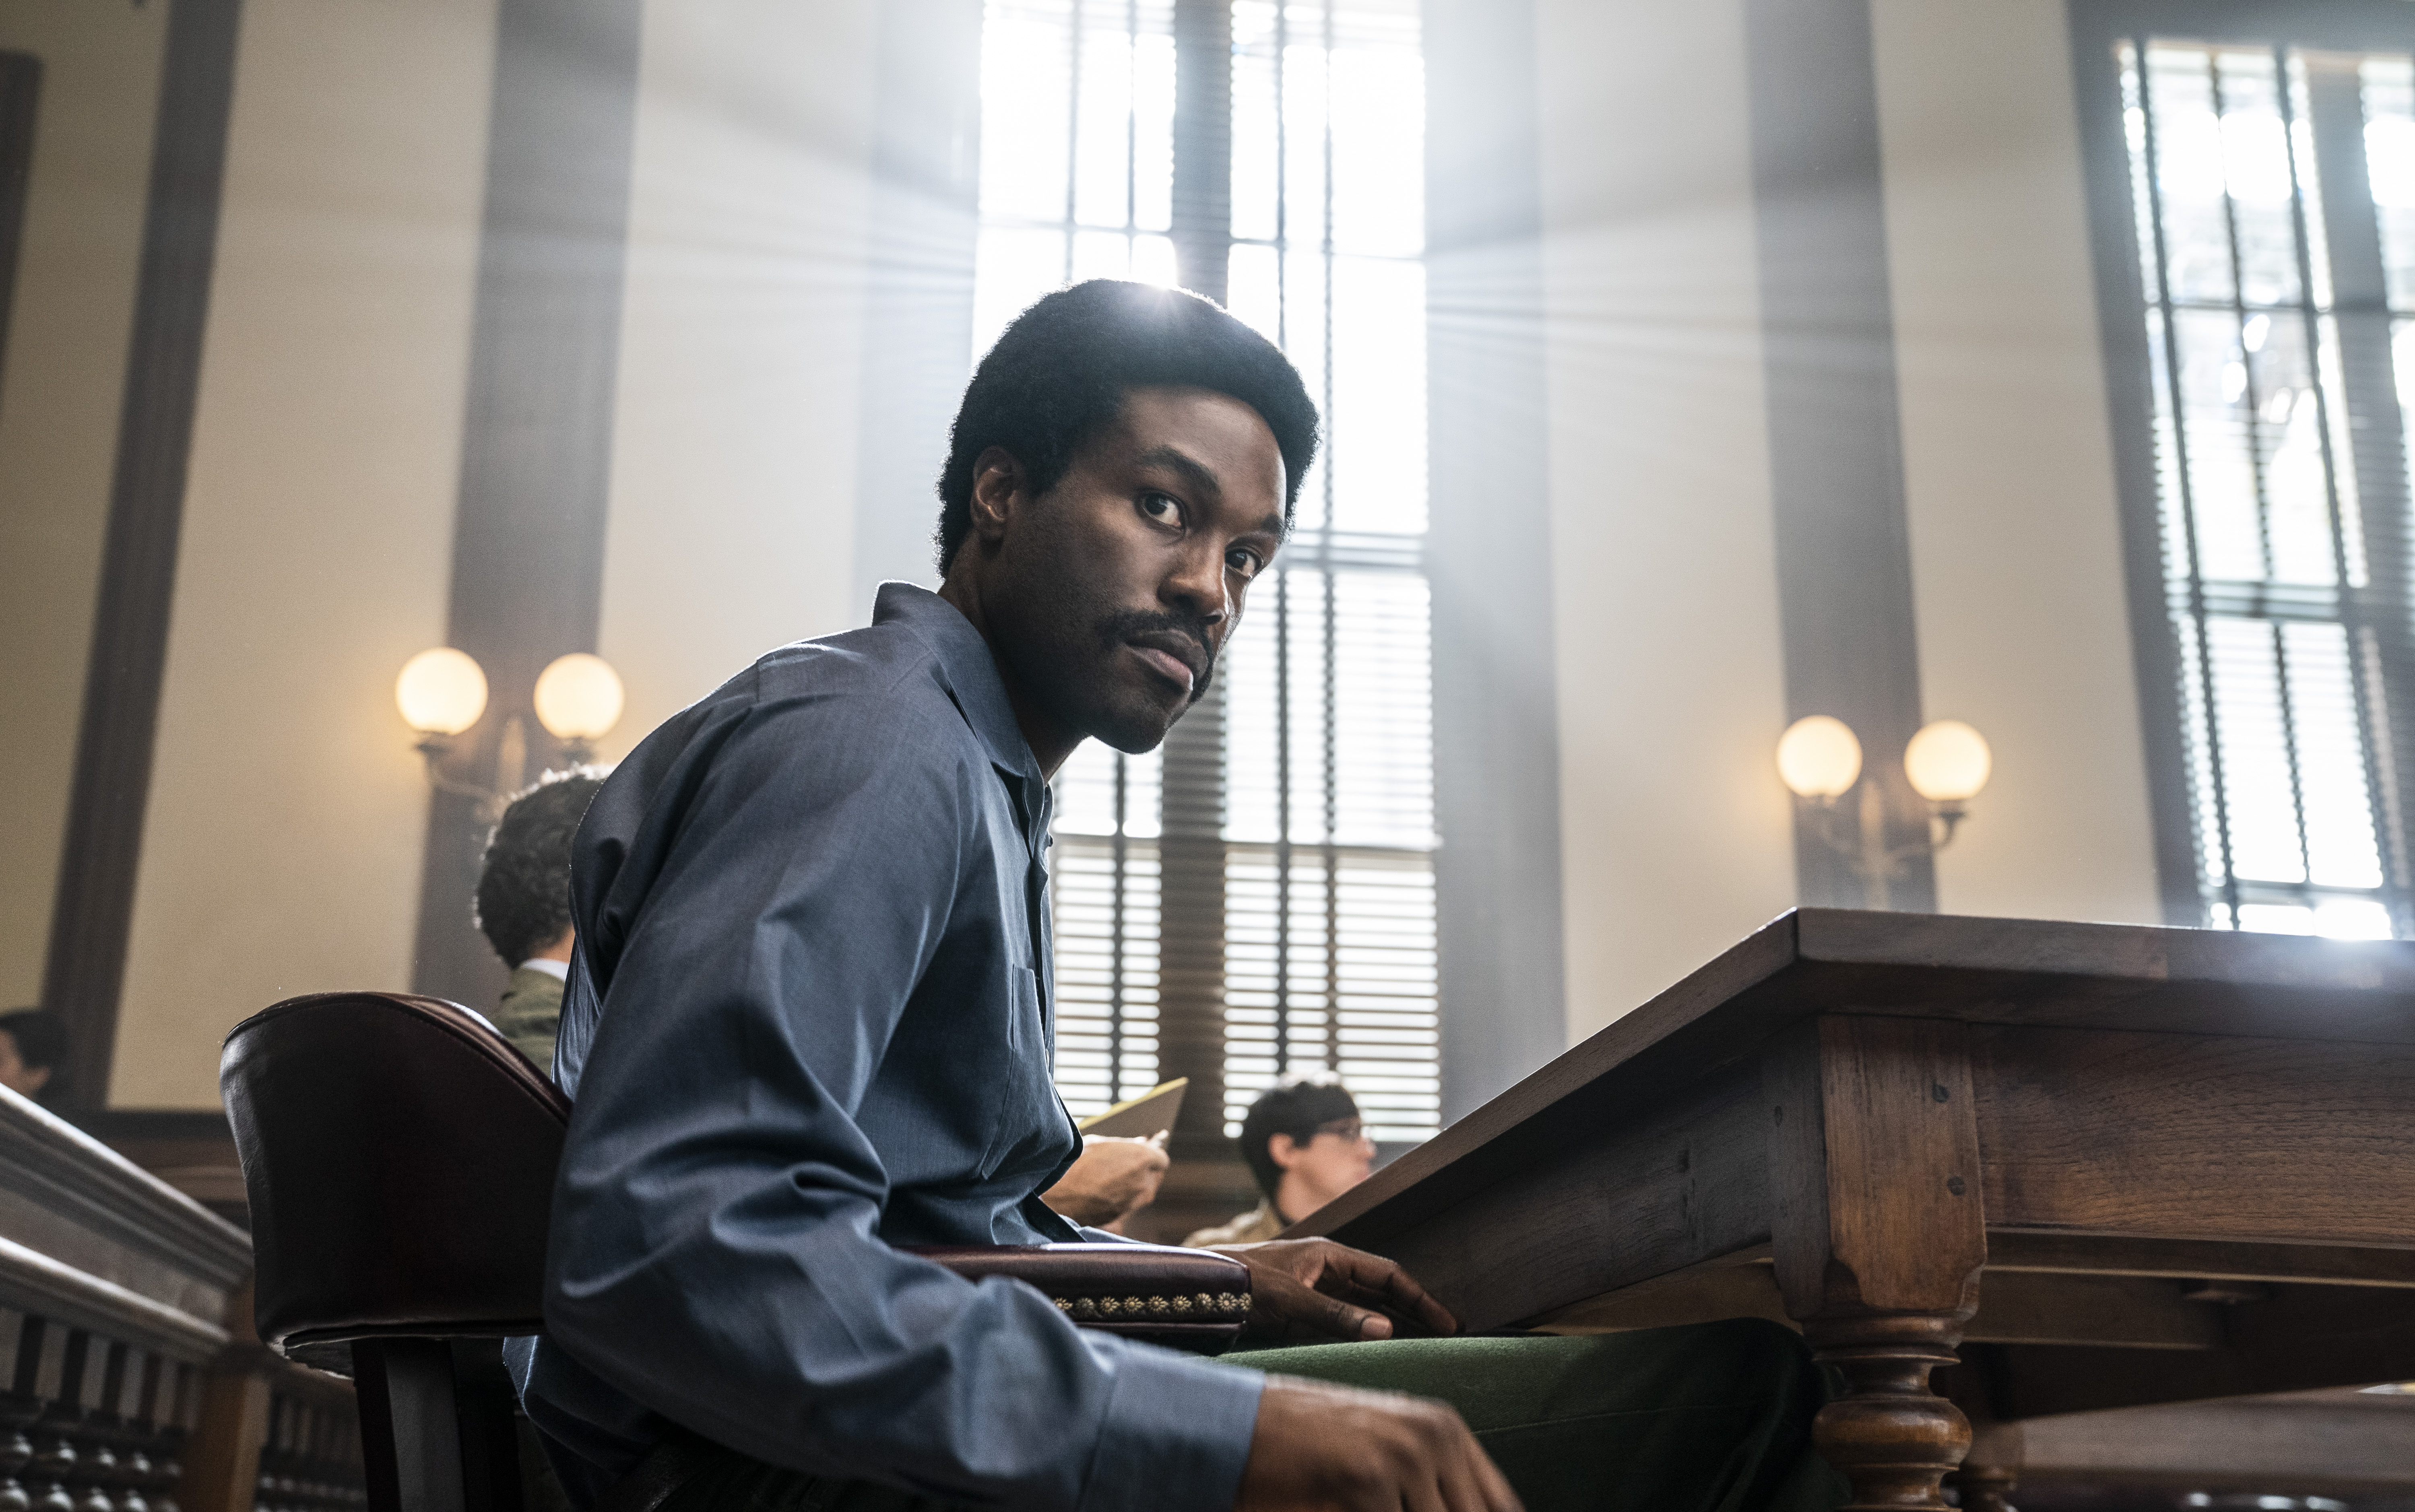 The Trial of the Chicago 7. Yahya Abdul-Mateen II as Bobby Seale in The Trial of the Chicago 7. Cr. Niko Tavernise/NETFLIX © 2020